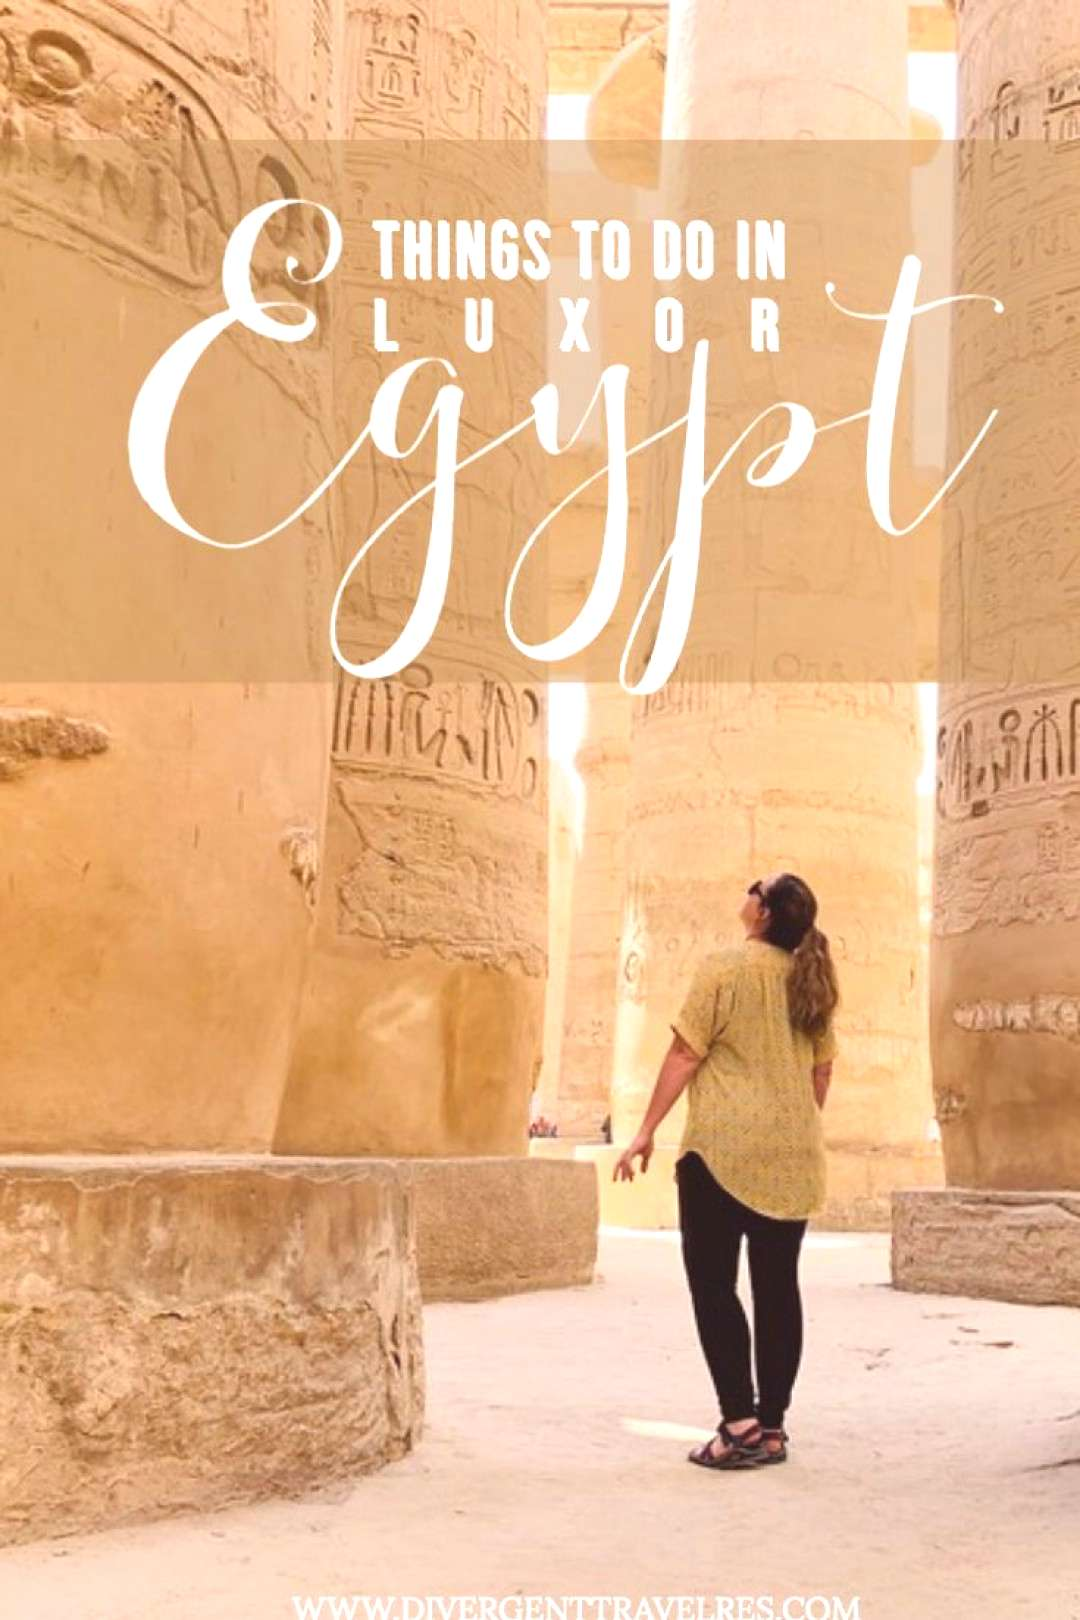 15 Epic Things to do in Luxor, Egypt The Nile River provides a green and verdant backdrop to the ar